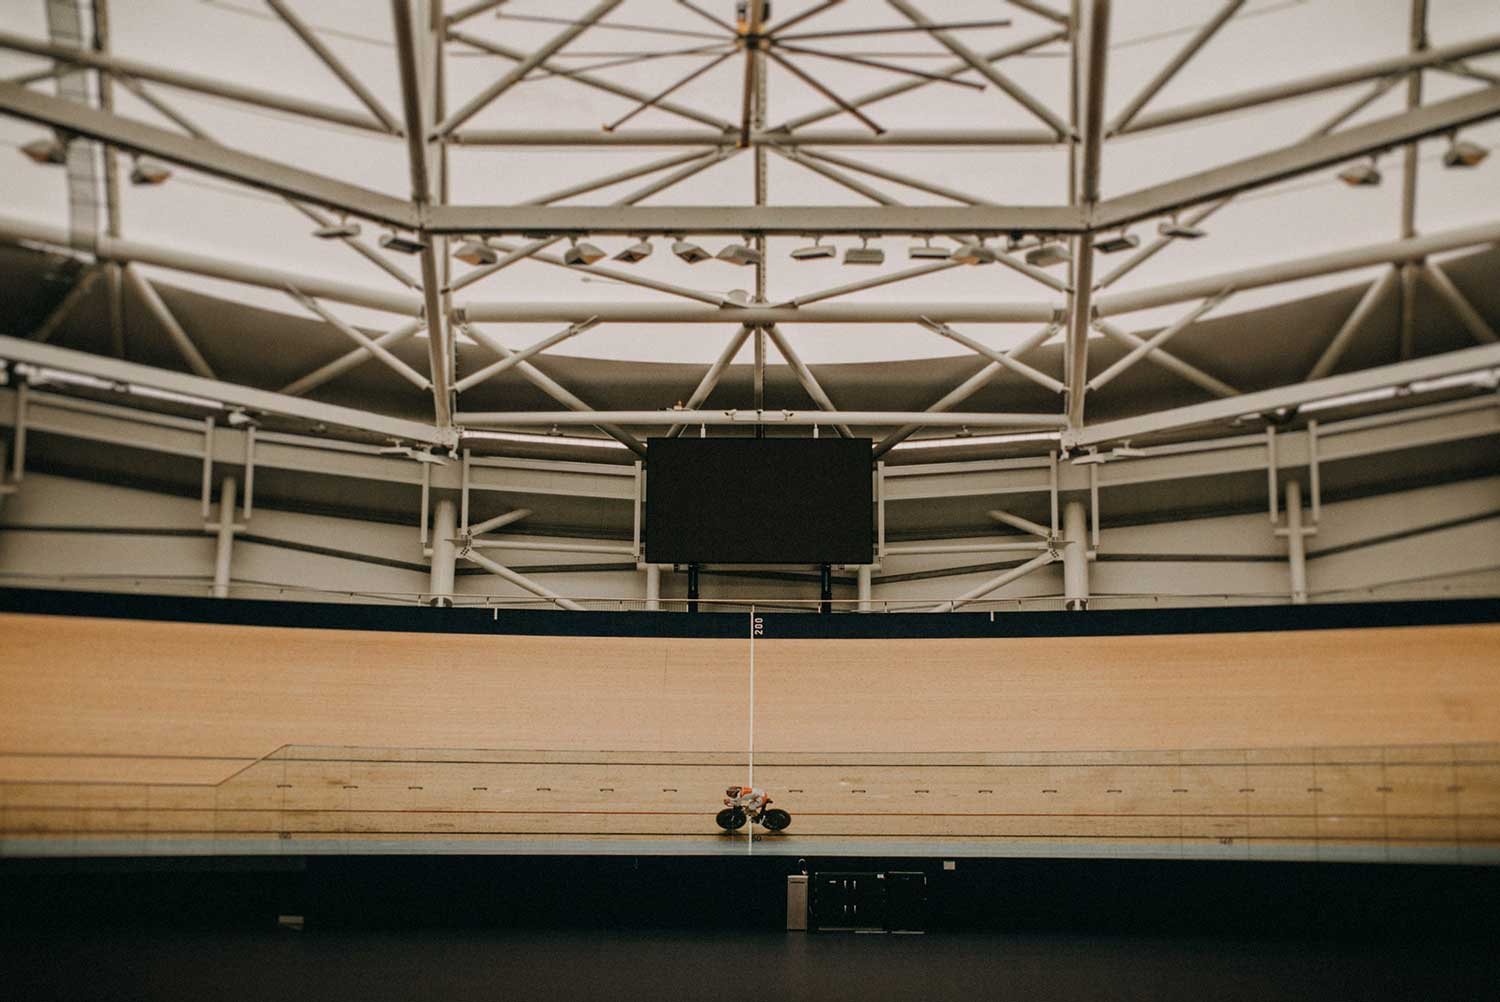 Japanese track cyclist training alone at the indoor velodrome